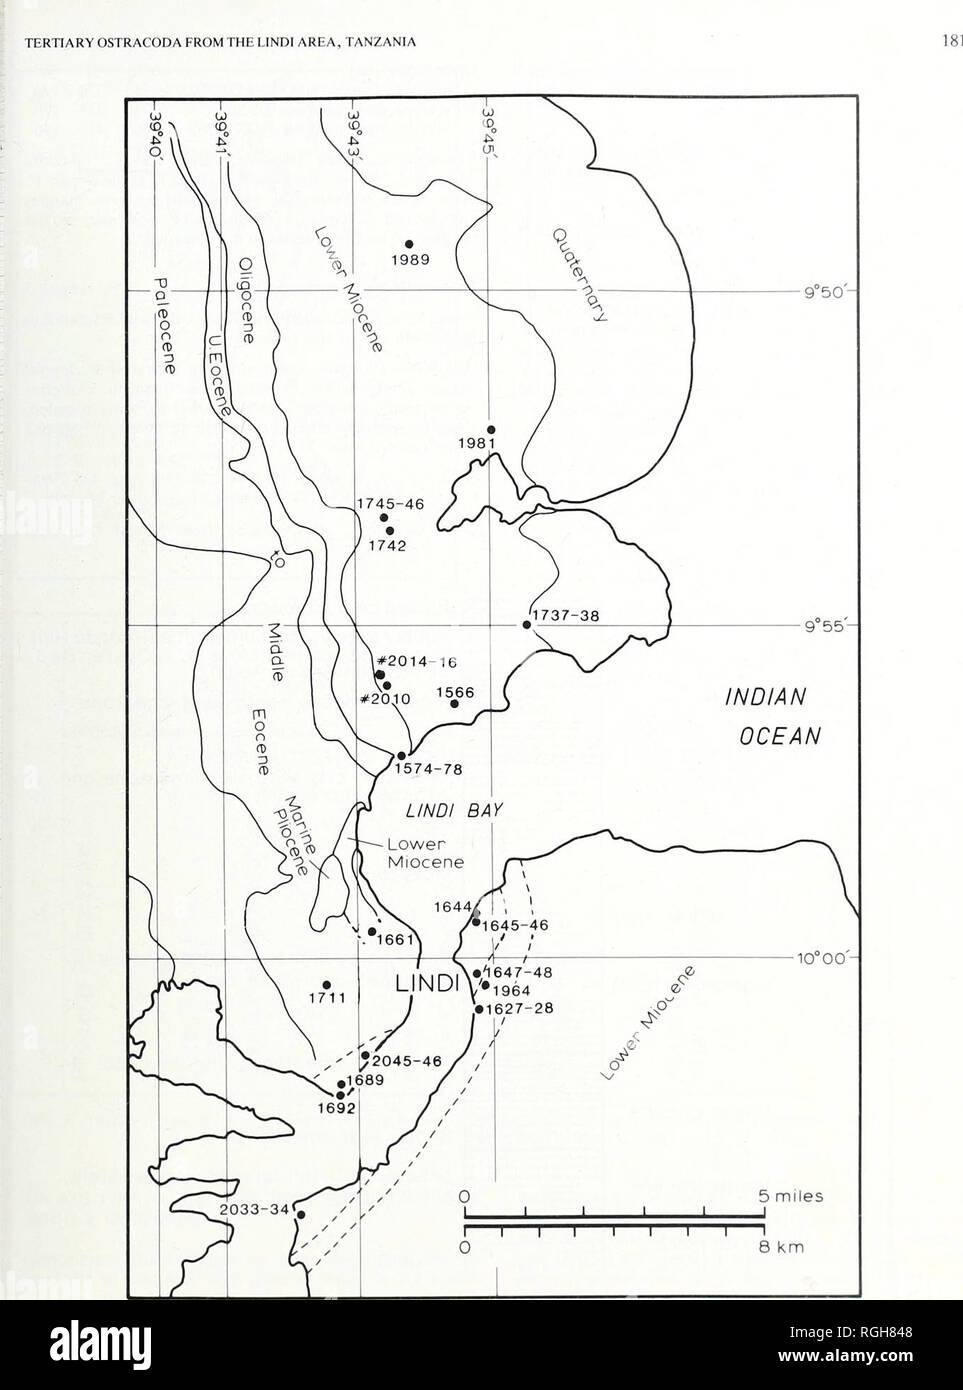 medium resolution of geology fig 3 sample location map i indi tanzania approx position only k rm 1 3 lies off the south cast corner ot the map